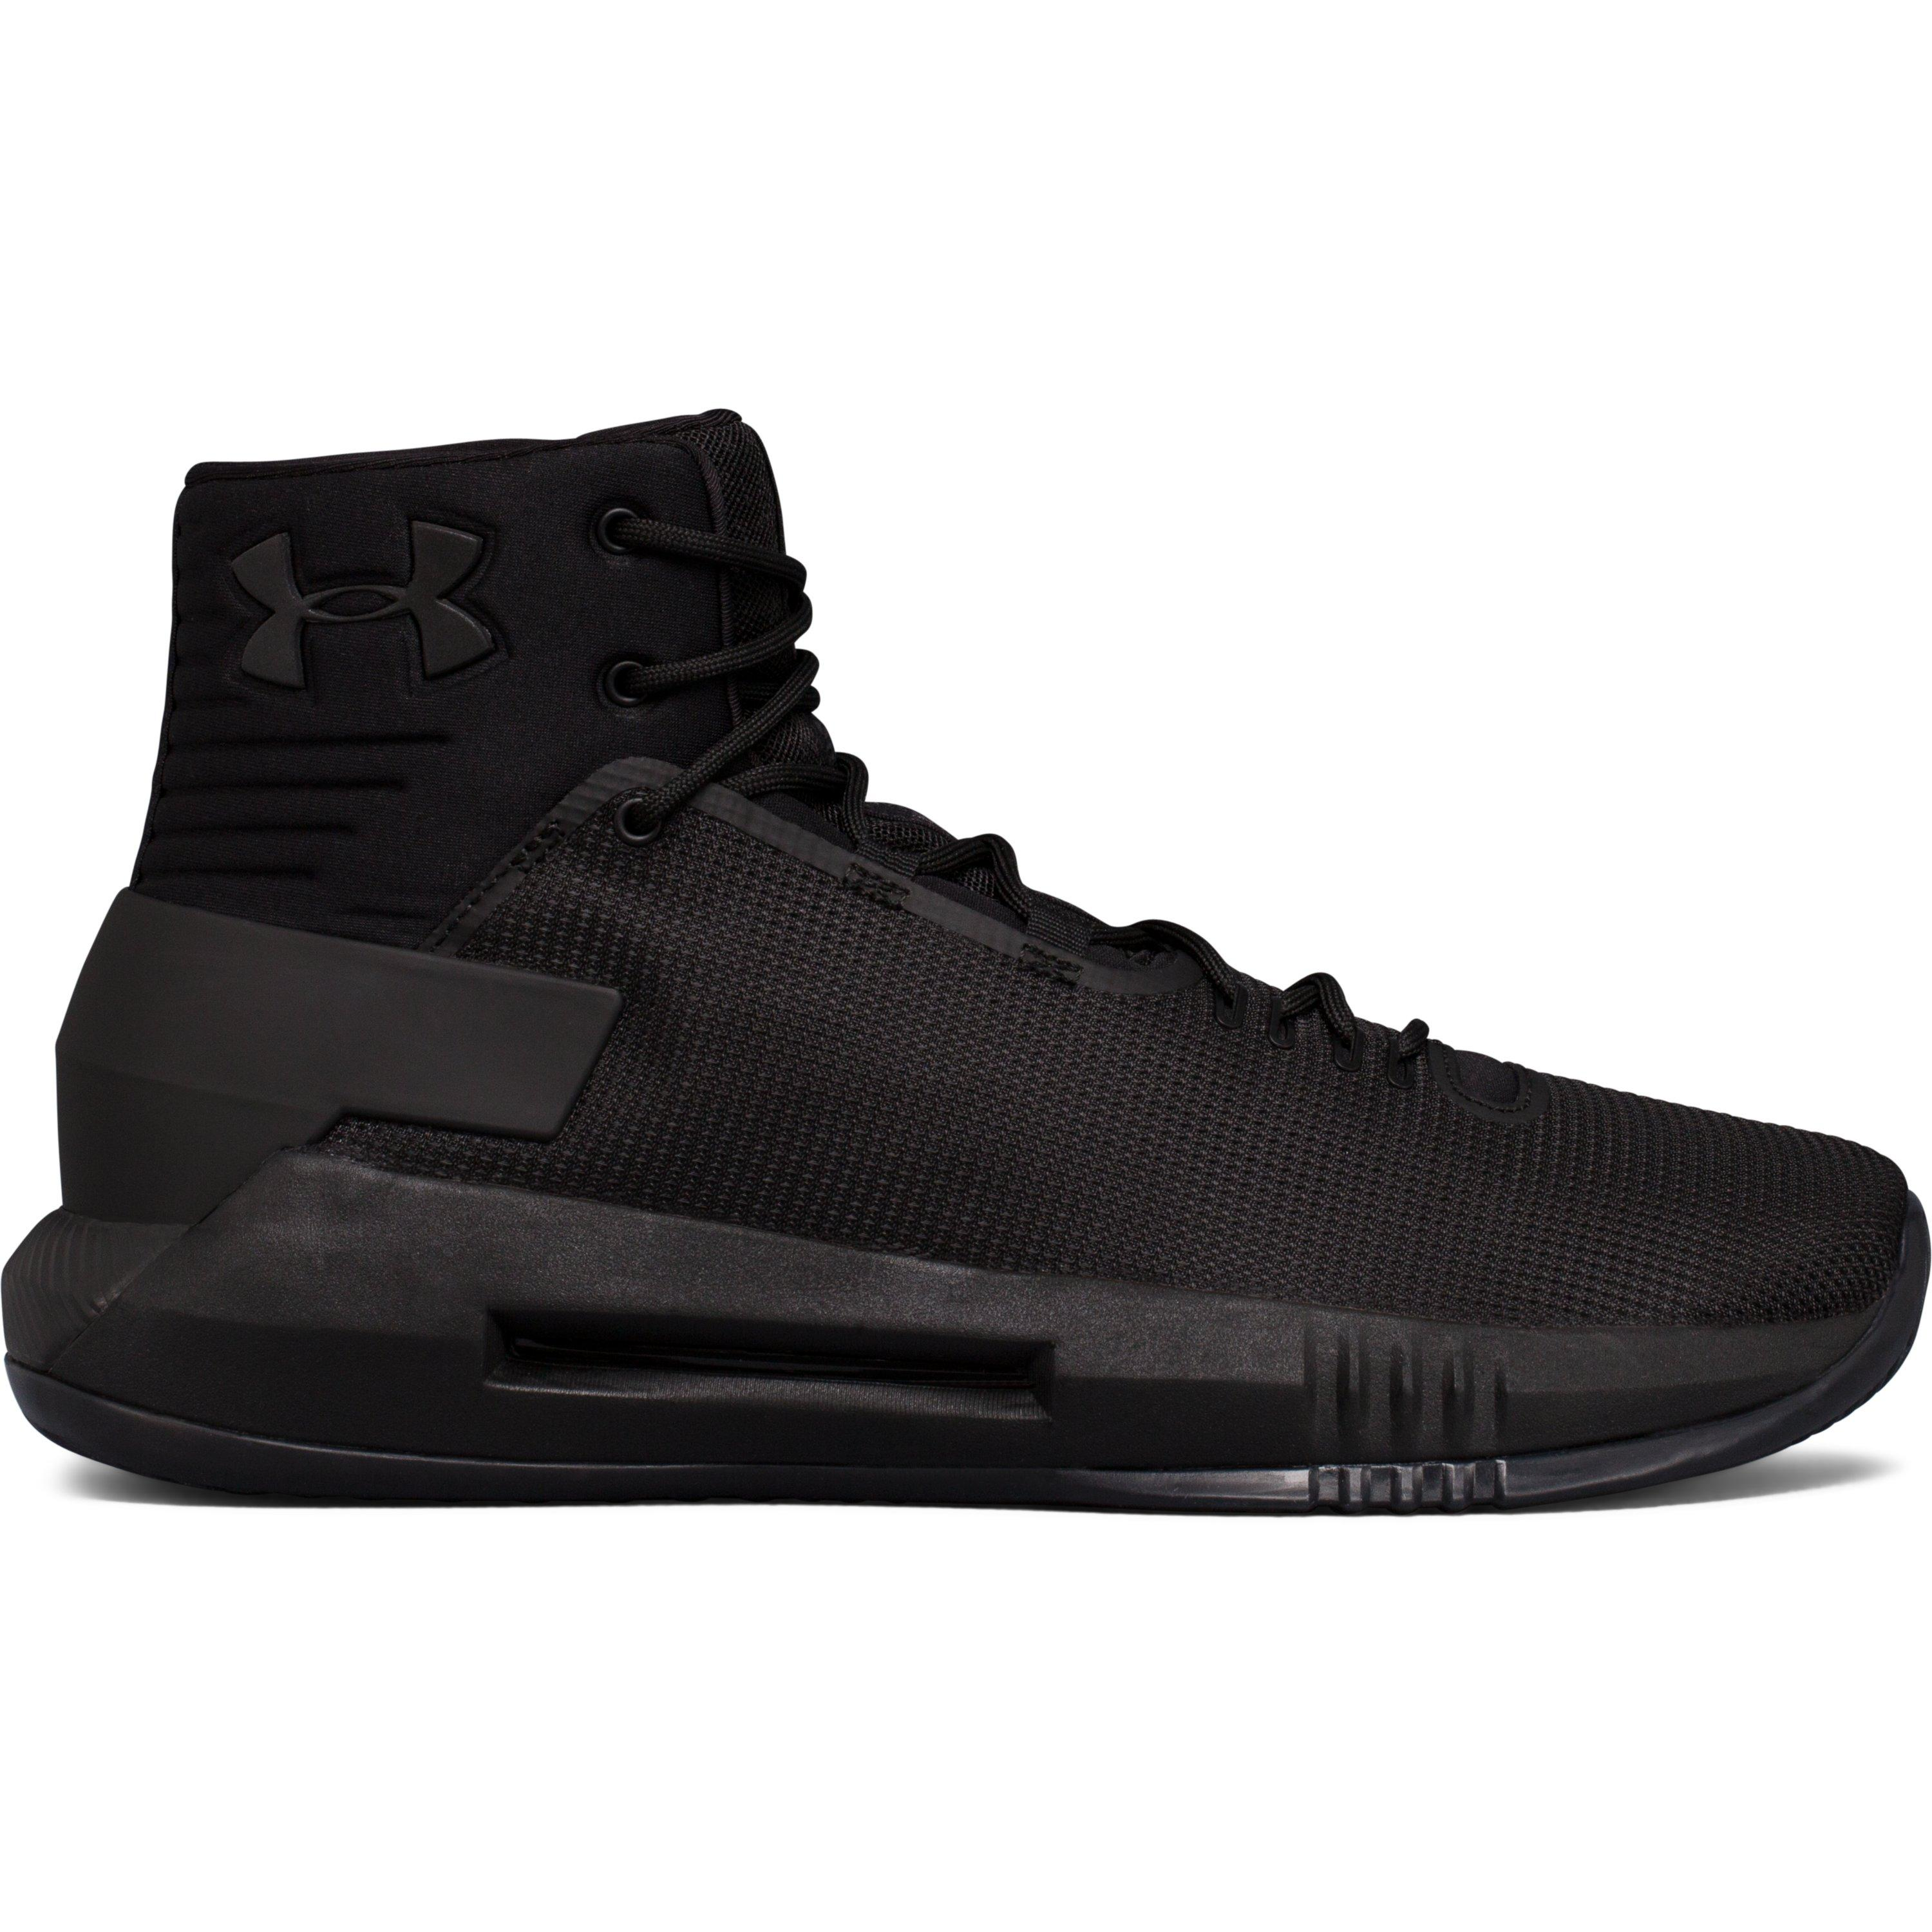 Under Armour Men S Ua Drive 4 Basketball Shoes In Black